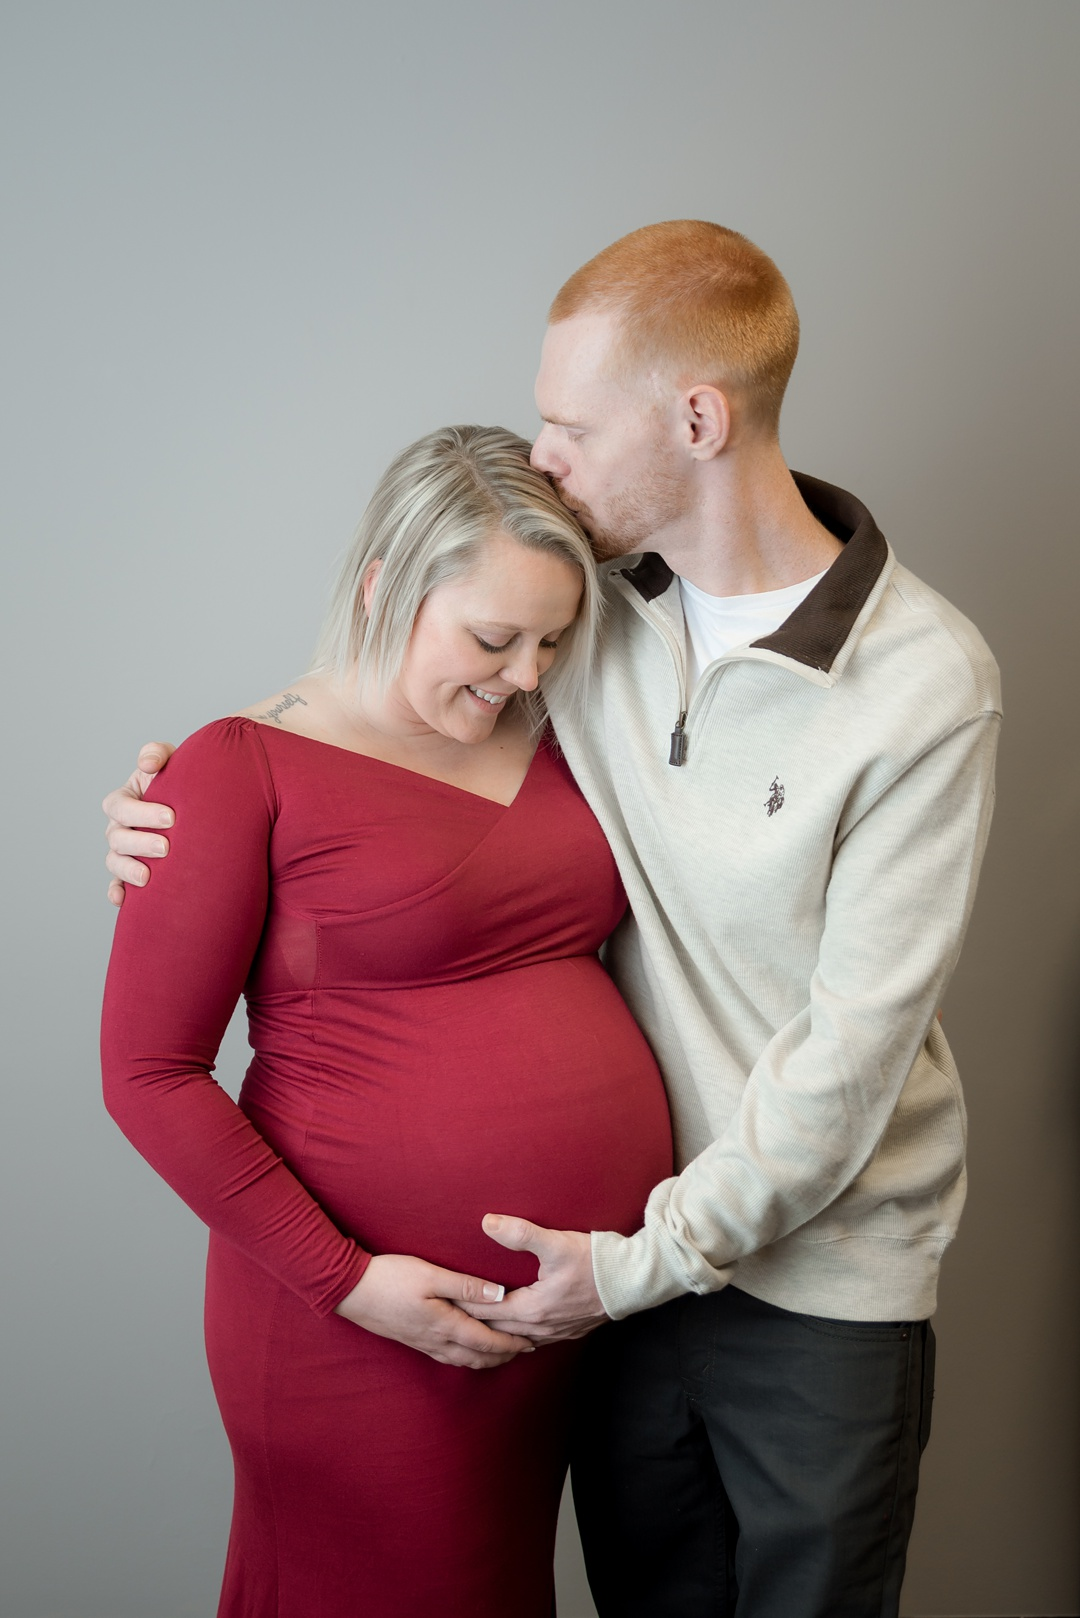 simpsonville-maternity-photographer-amy-marsh-photography_0068.jpg